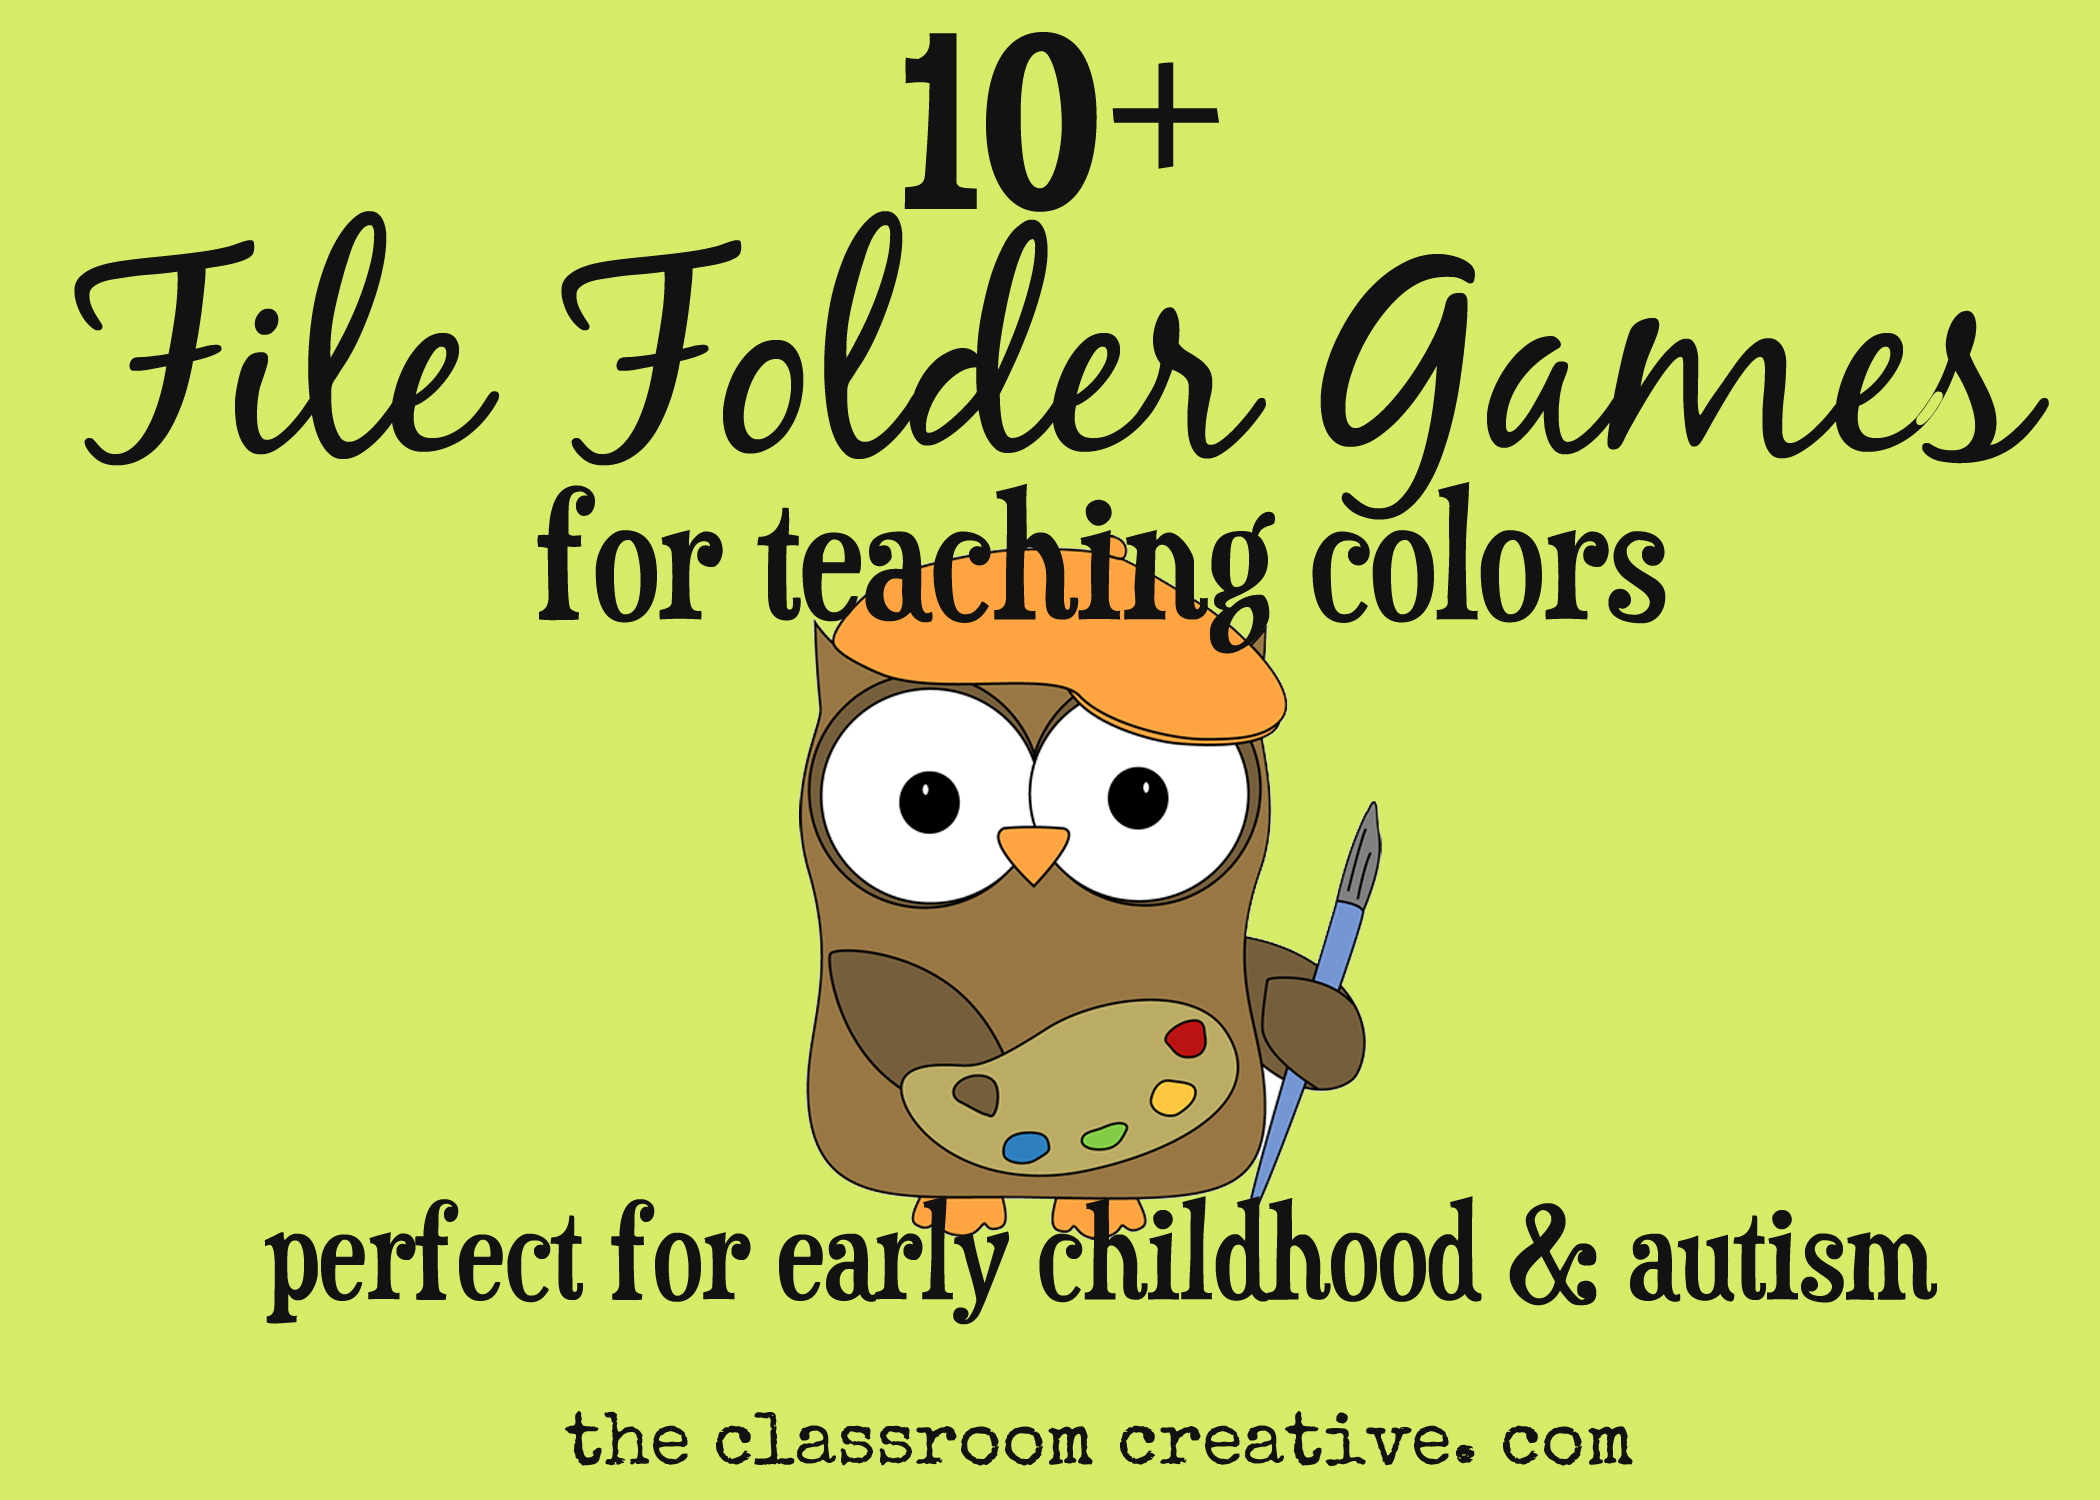 File Folder Games For Teaching Colors - File Folder Games For Toddlers Free Printable